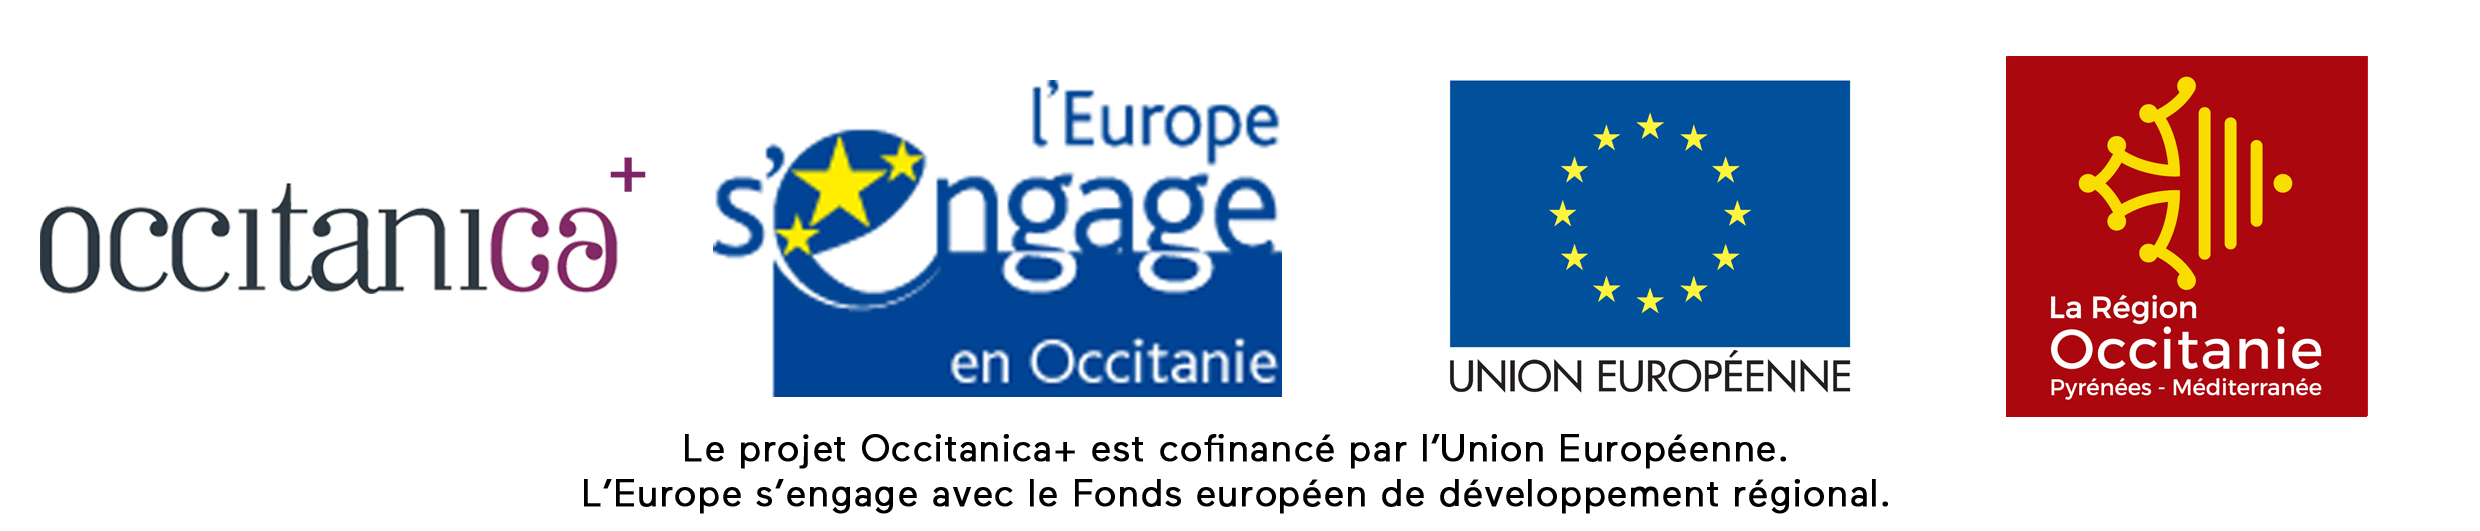 logos occitanica europe s'engage union europenne région occitanie